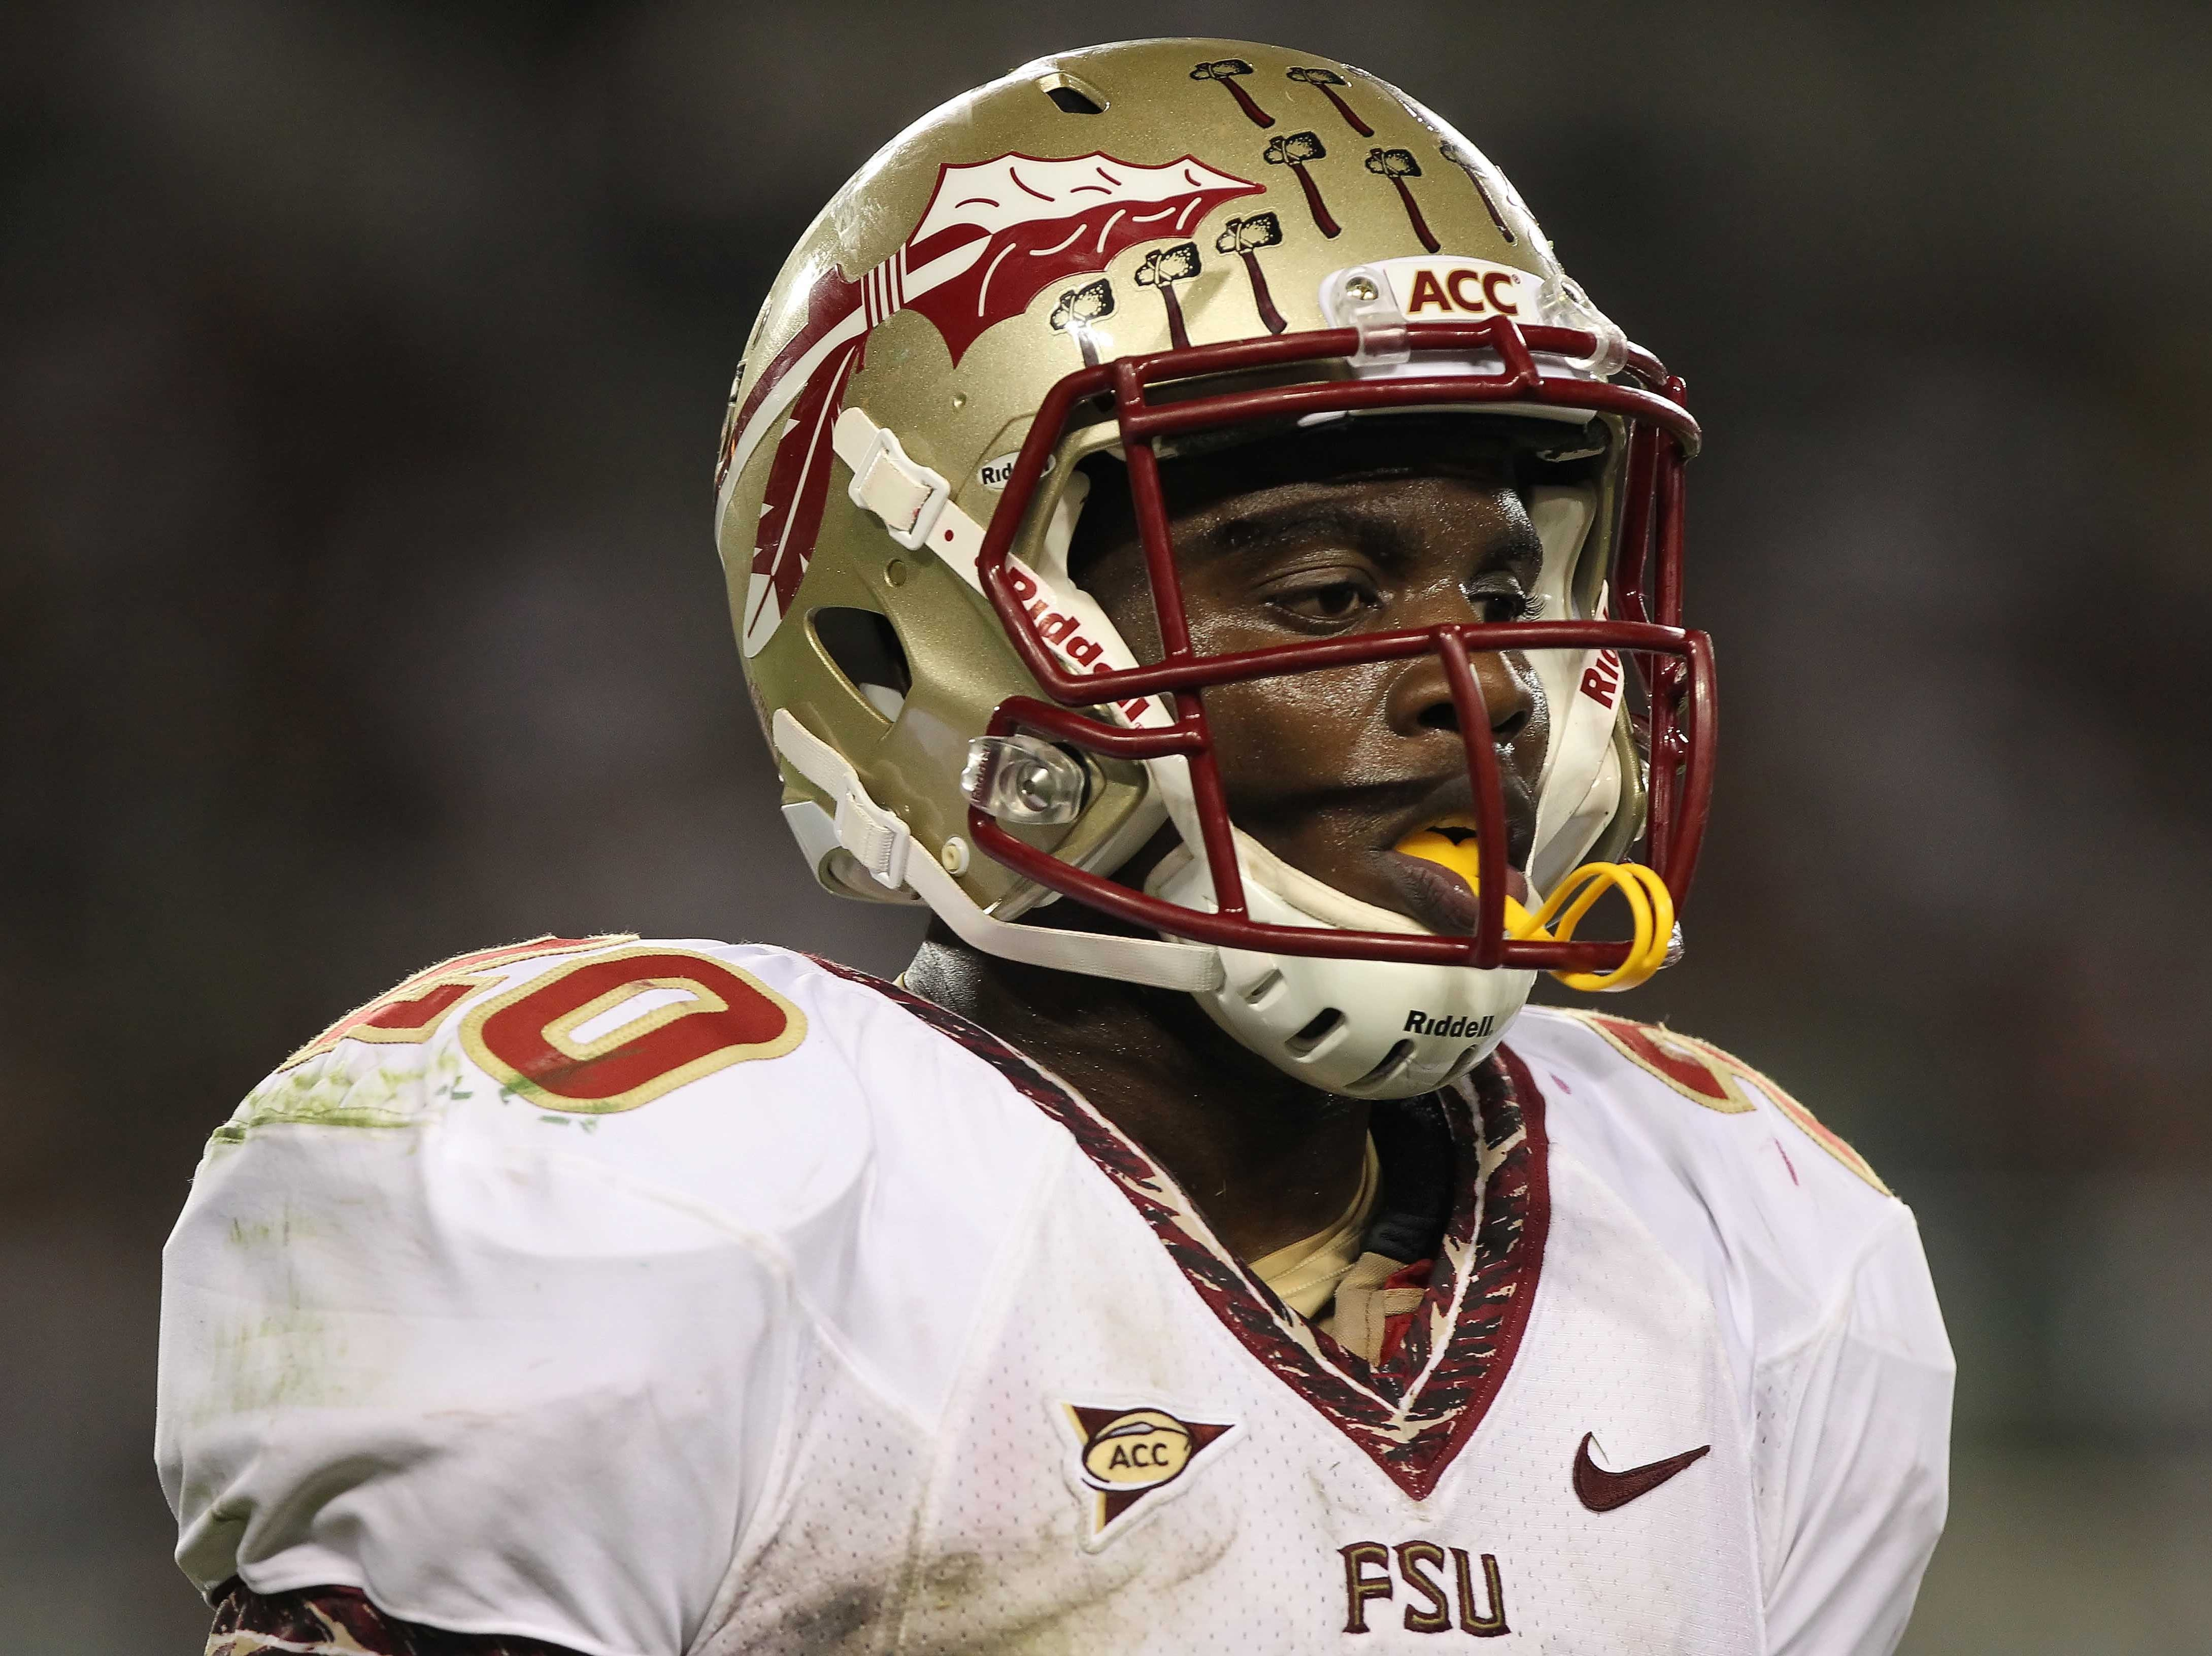 September 29, 2012; Tampa, FL, USA; Florida State Seminoles defensive back Lamarcus Joyner (20) against the South Florida Bulls during the second half at Raymond James Stadium. Florida State Seminoles defeated the South Florida Bulls 30-17. Mandatory Credit: Kim Klement-USA TODAY Sports